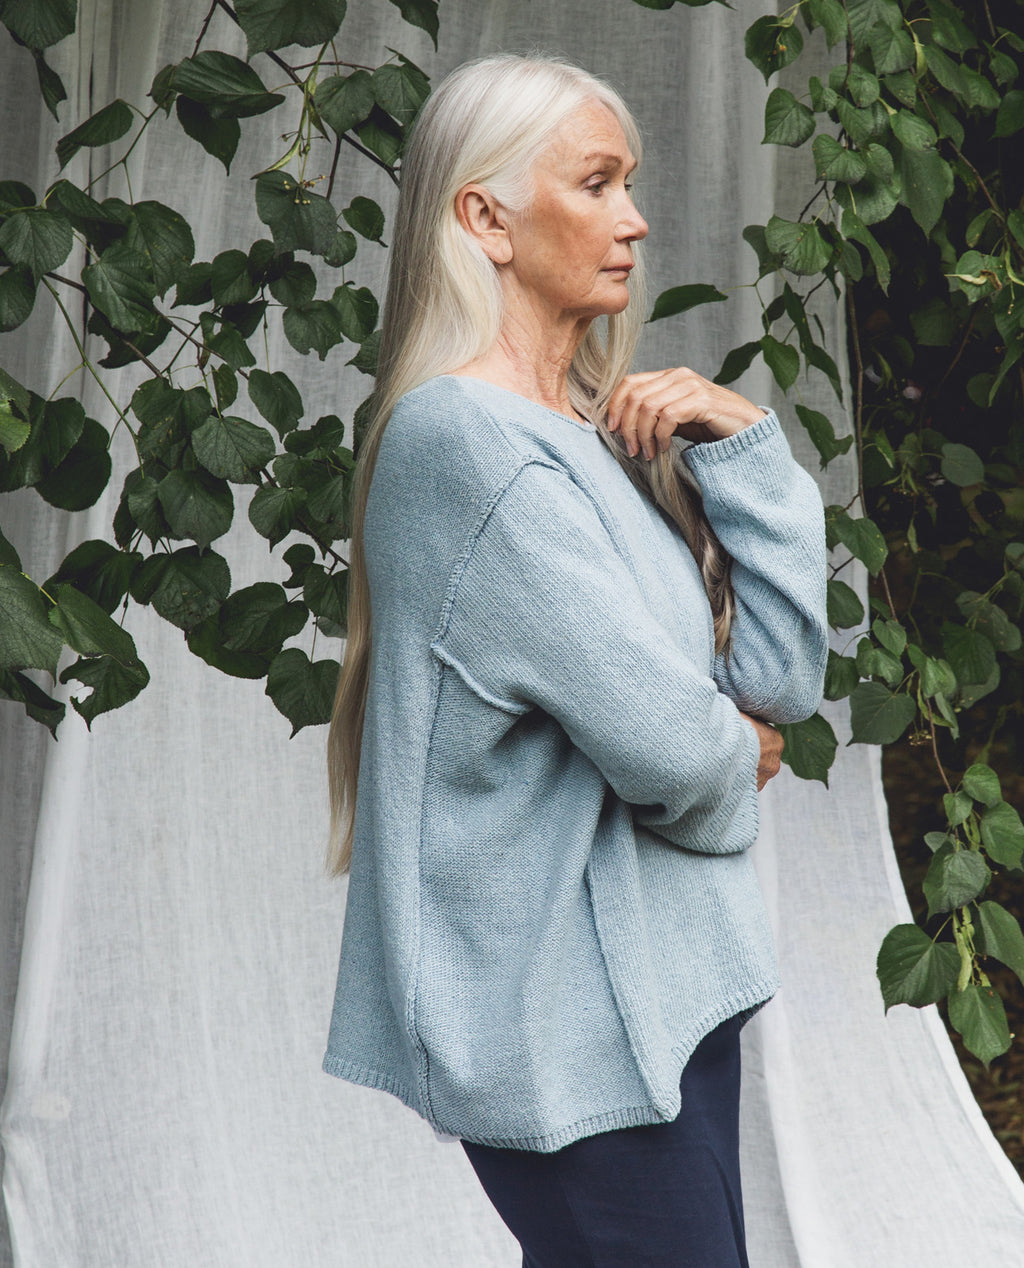 Alessandra Recycled Cotton Jumper In Pale Blue.